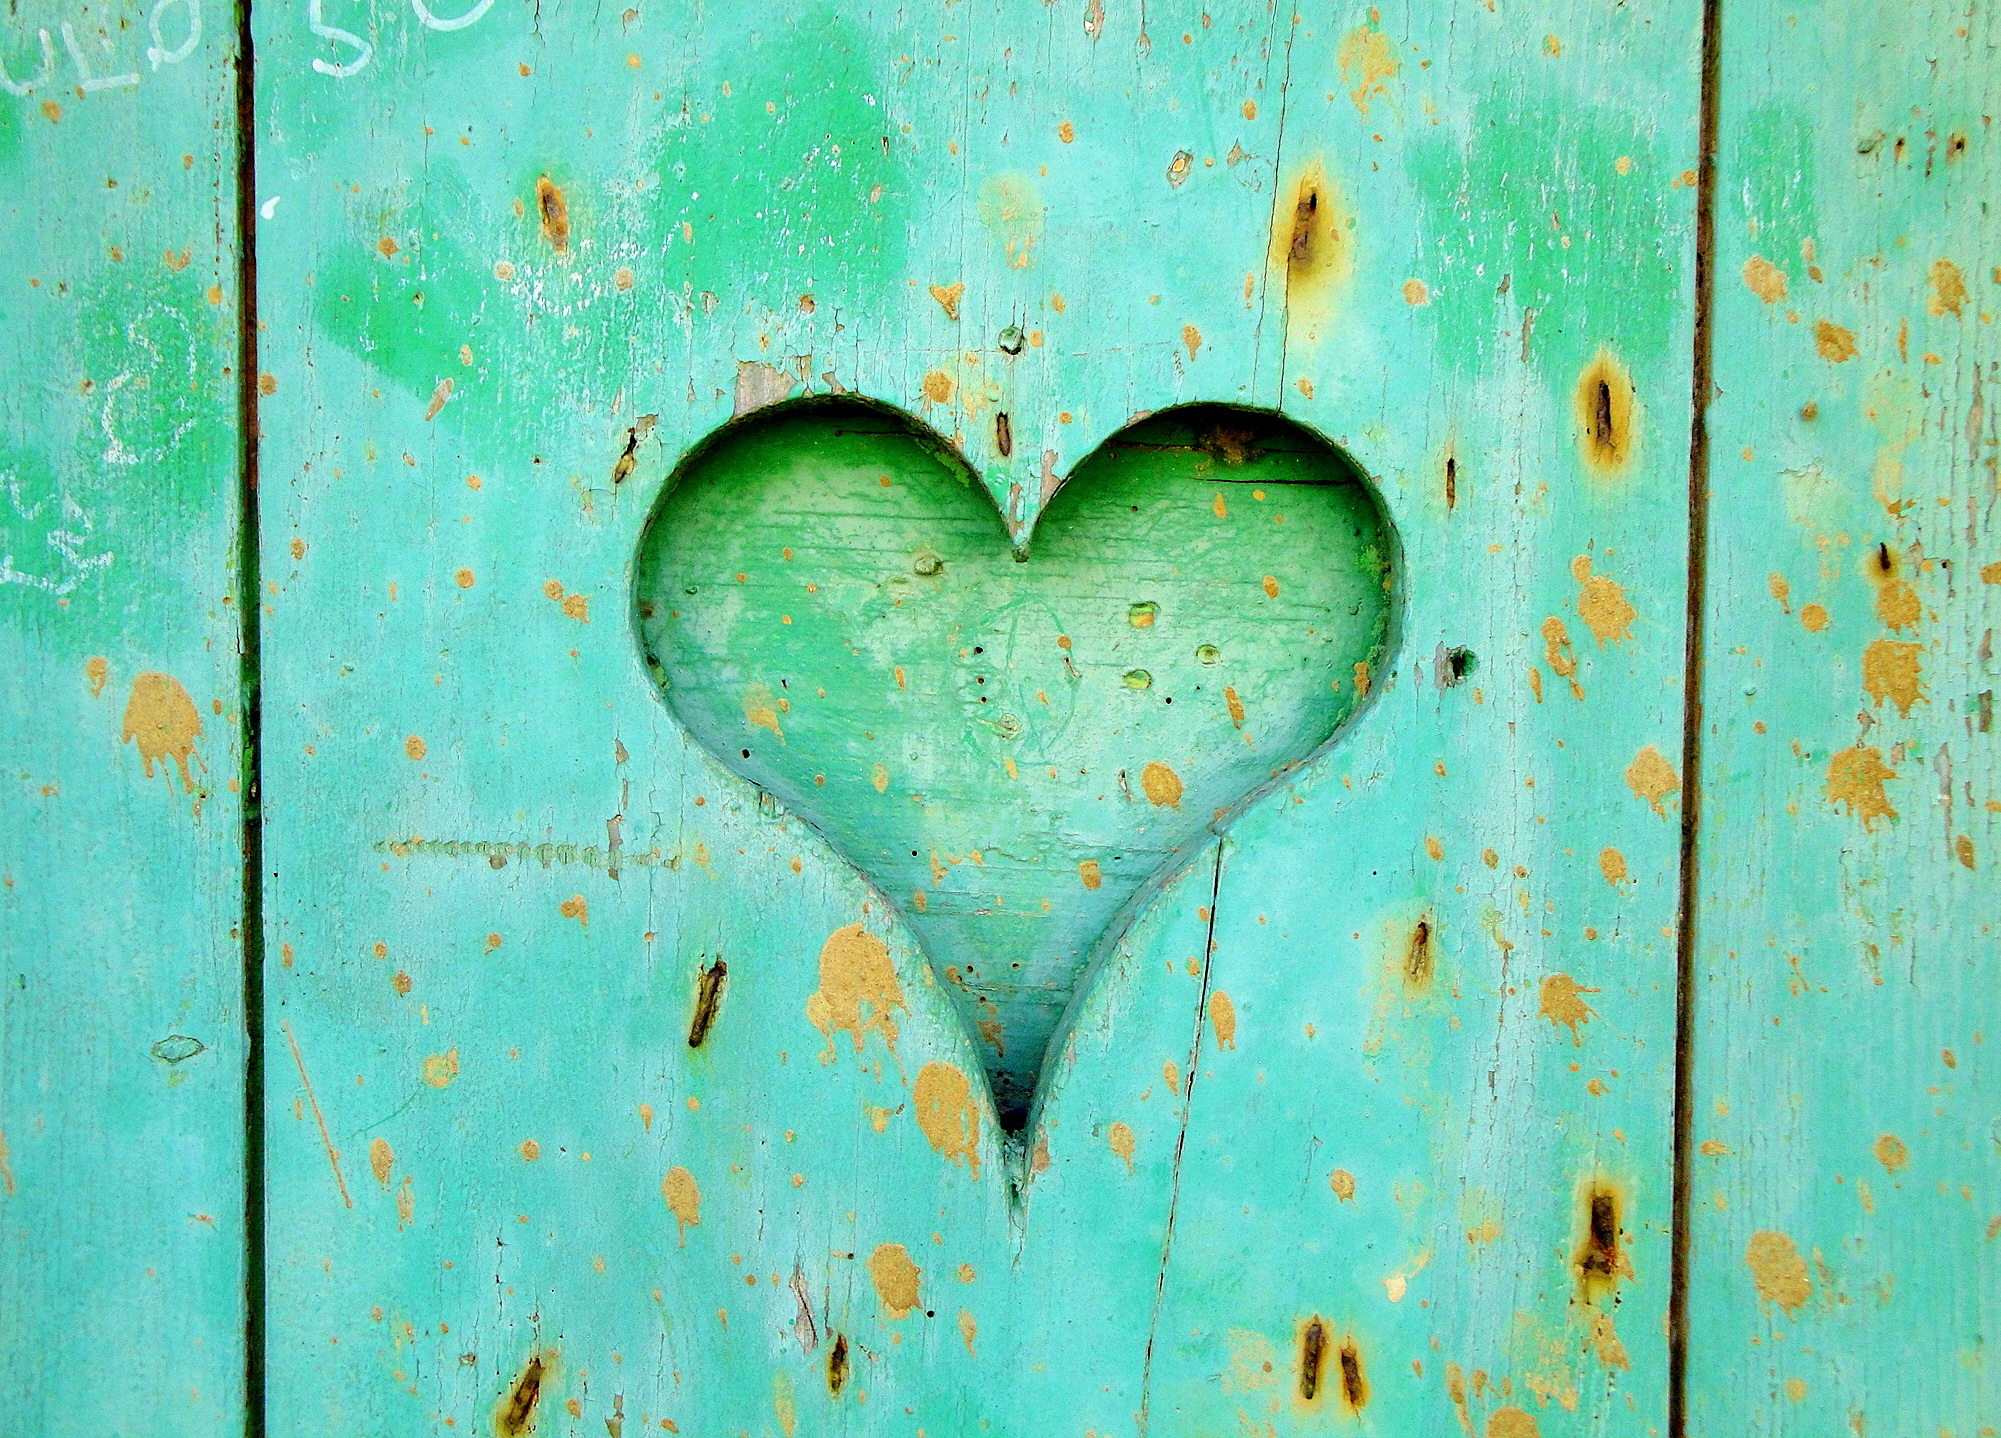 Heart background,texture,plank,rough